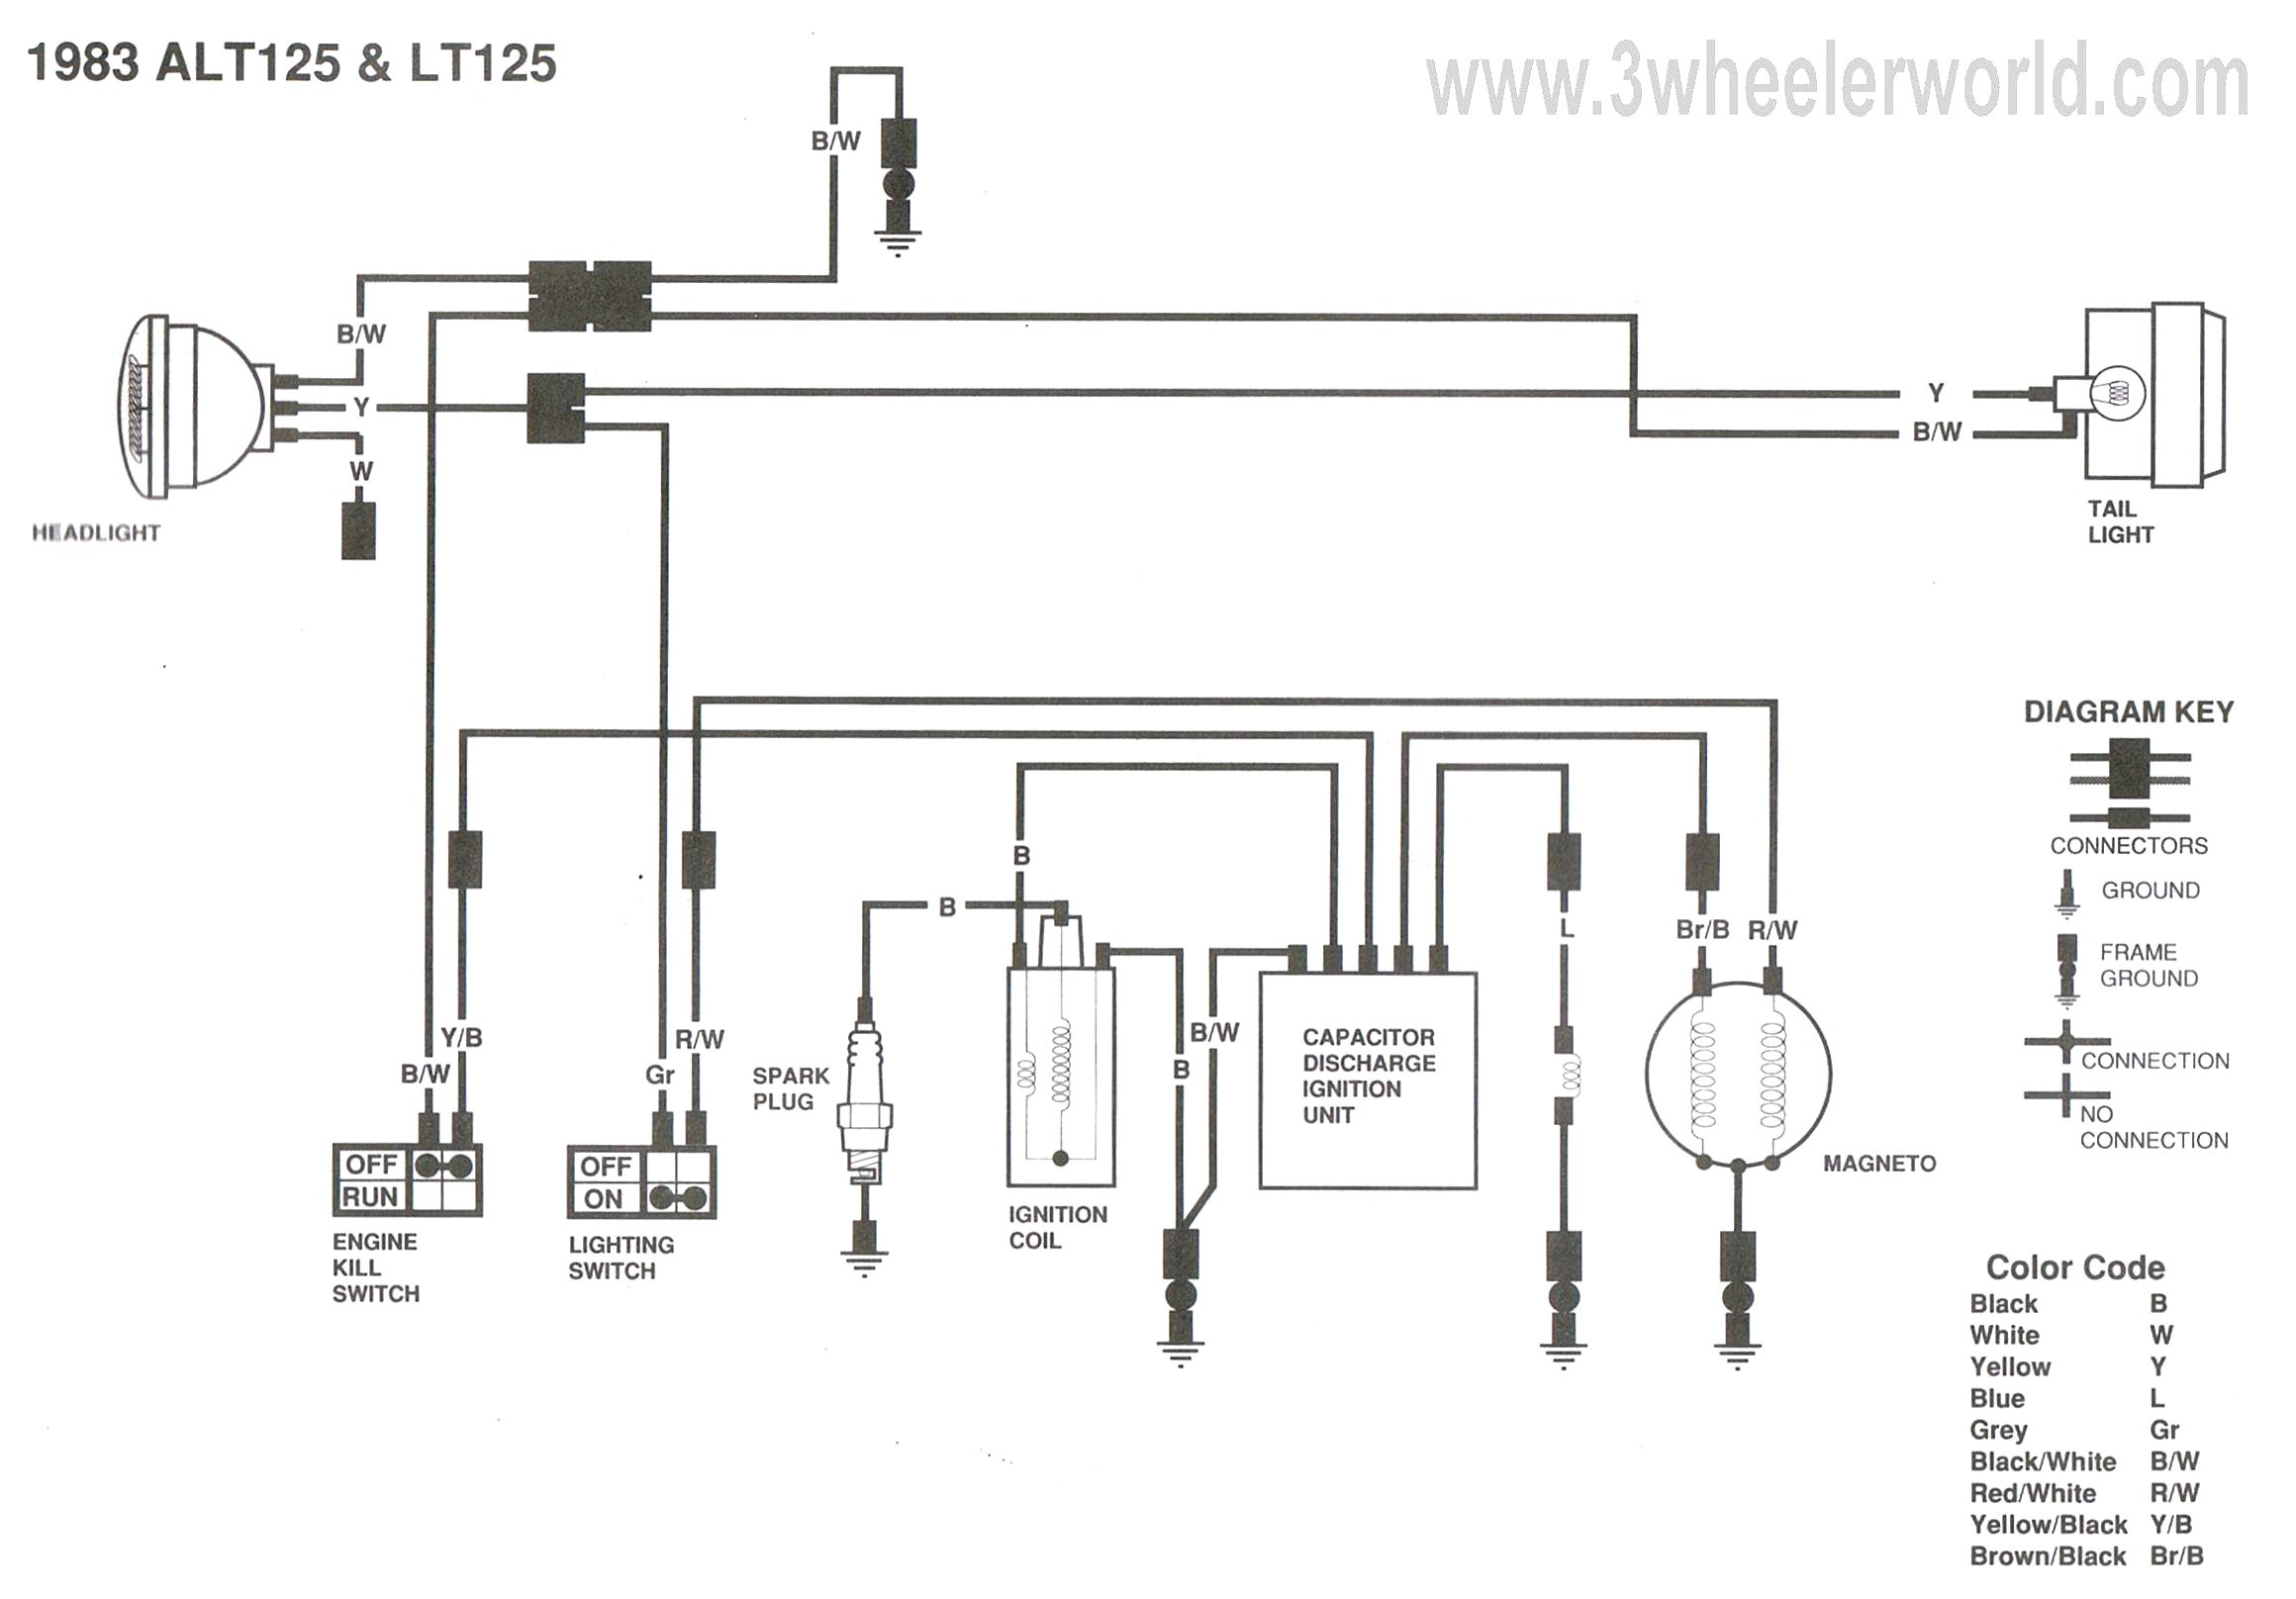 Kawasaki Bayou 220 Engine Diagram Kfx 80 Wiring Diagram Worksheet and Wiring Diagram • Of Kawasaki Bayou 220 Engine Diagram Wiring Diagram Archives Page 69 Of 71 Balnearios